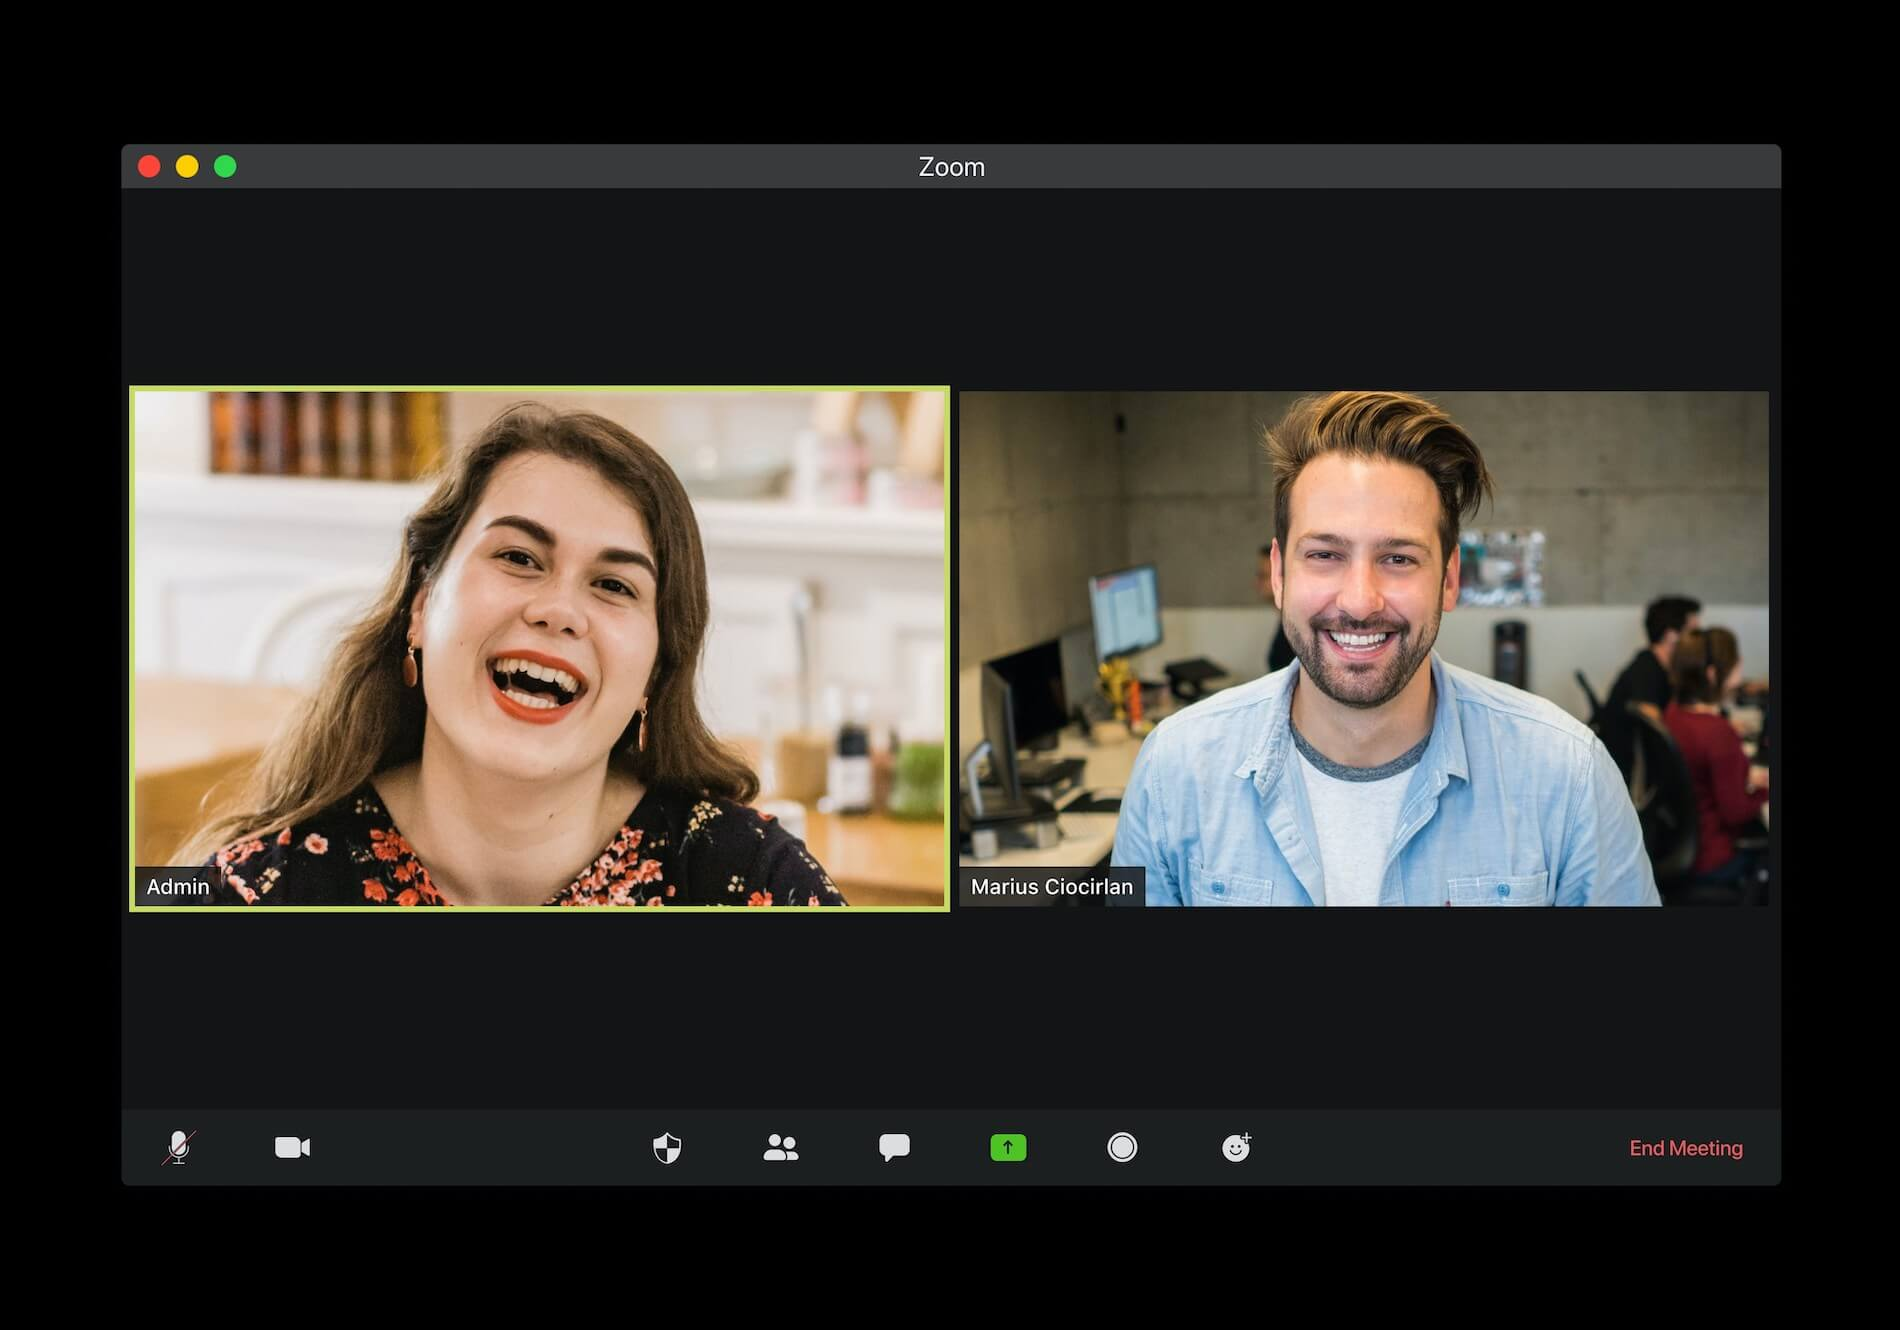 Man and woman on split-screen participating in zoom conference call